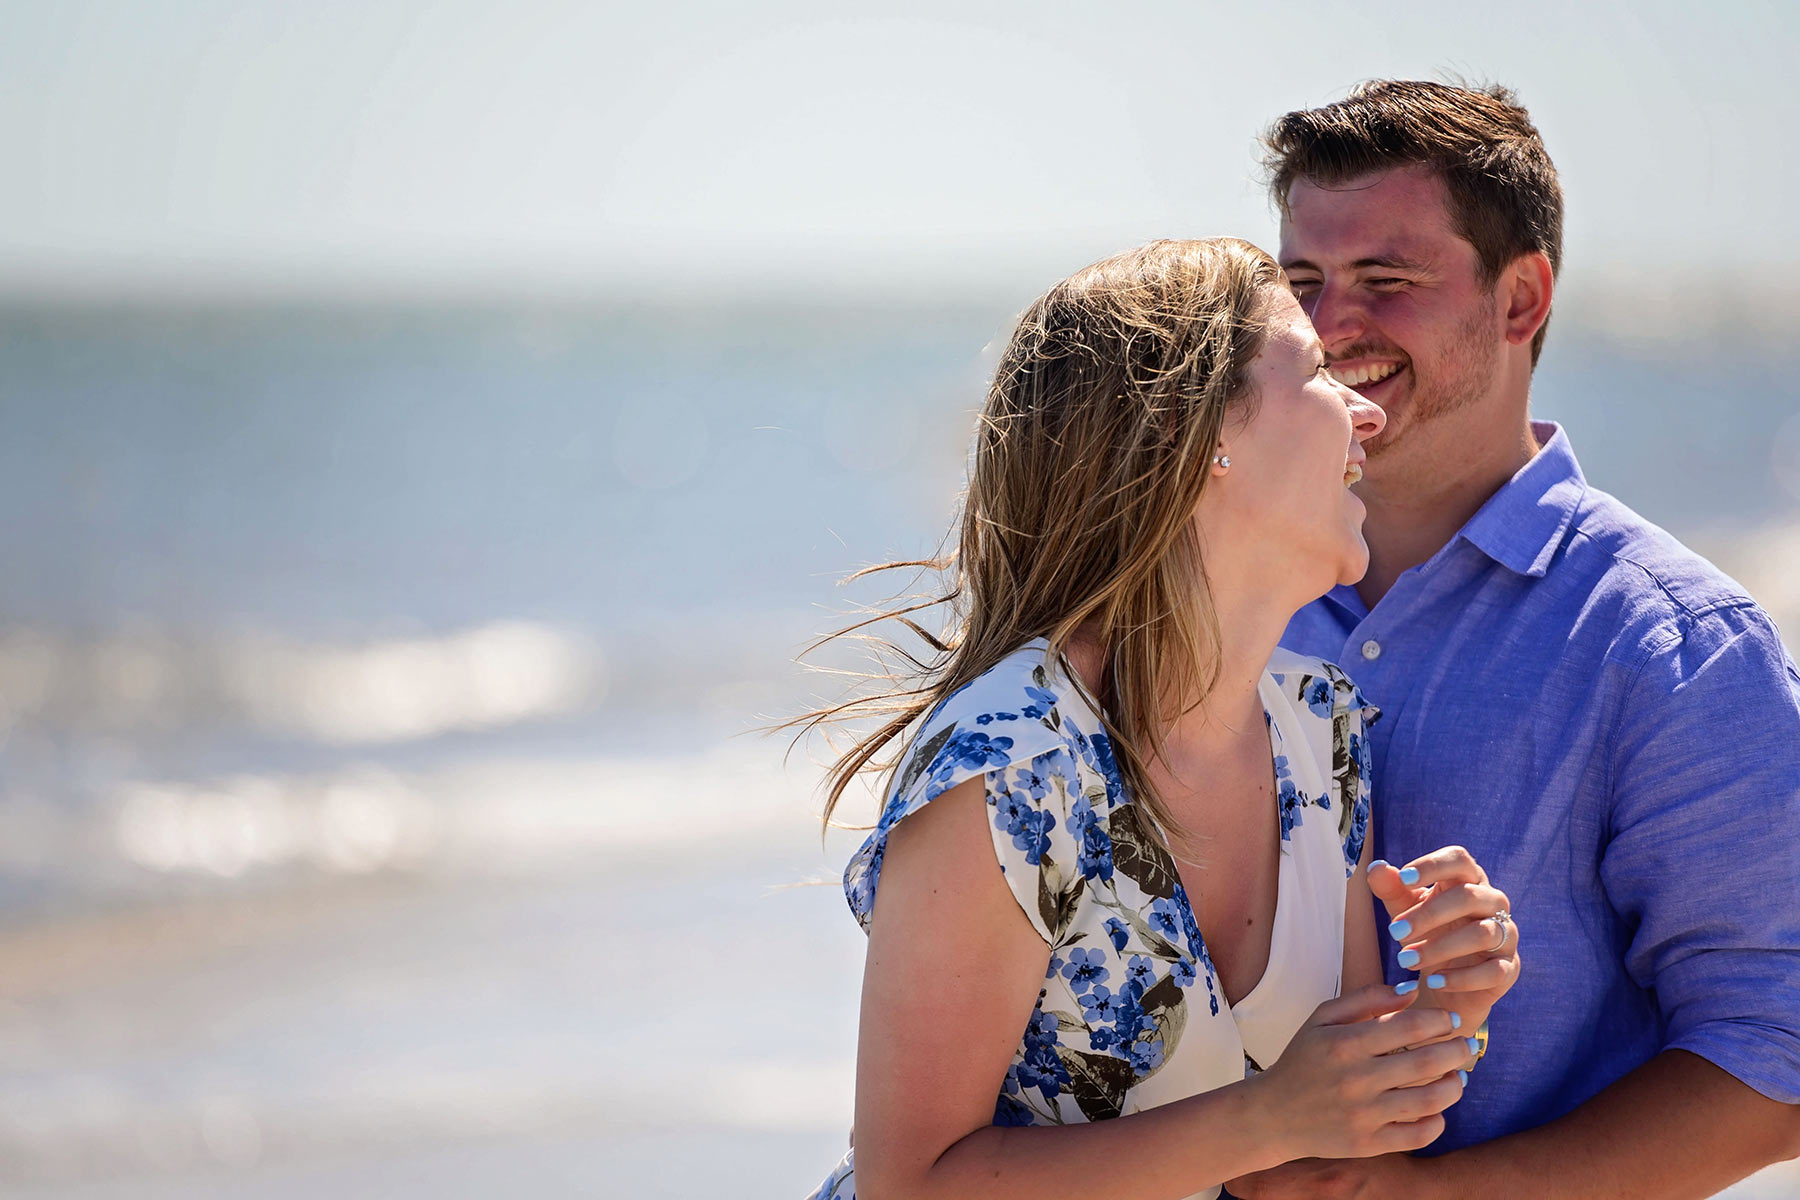 couple laughs together on the beach